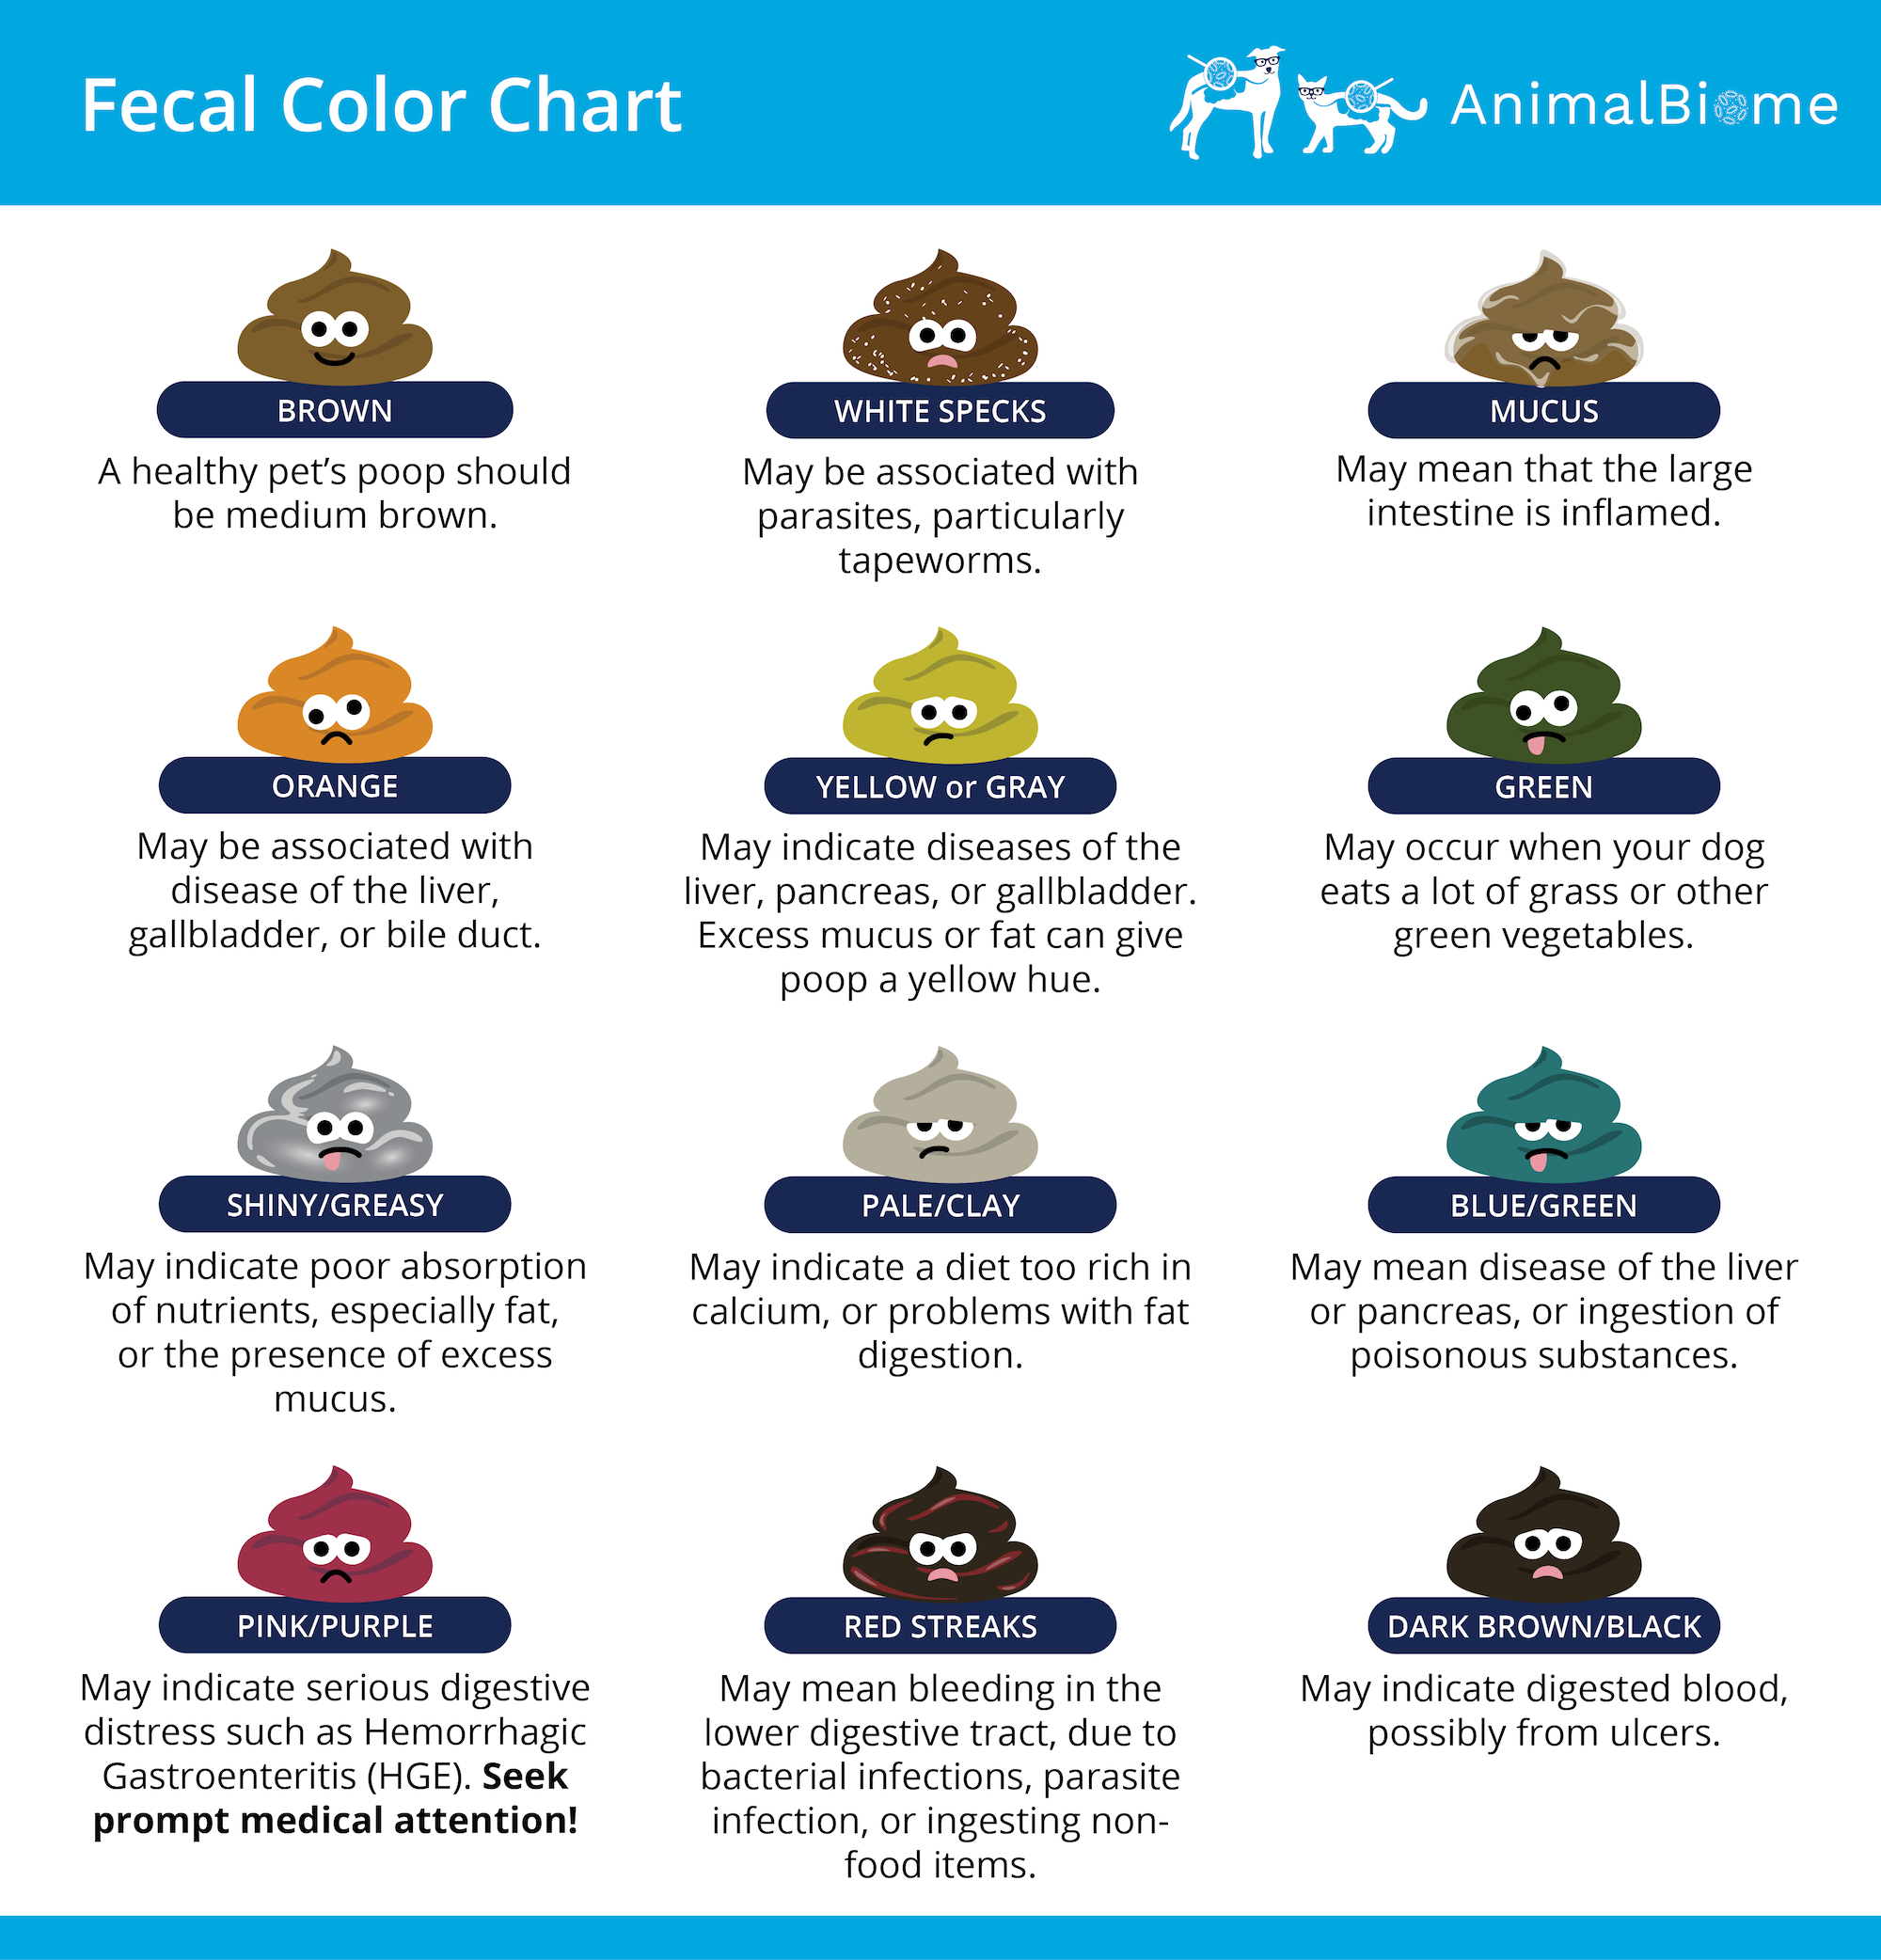 Dog Fecal Color Chart: It's important to pay attention to the color of your dog's poop.